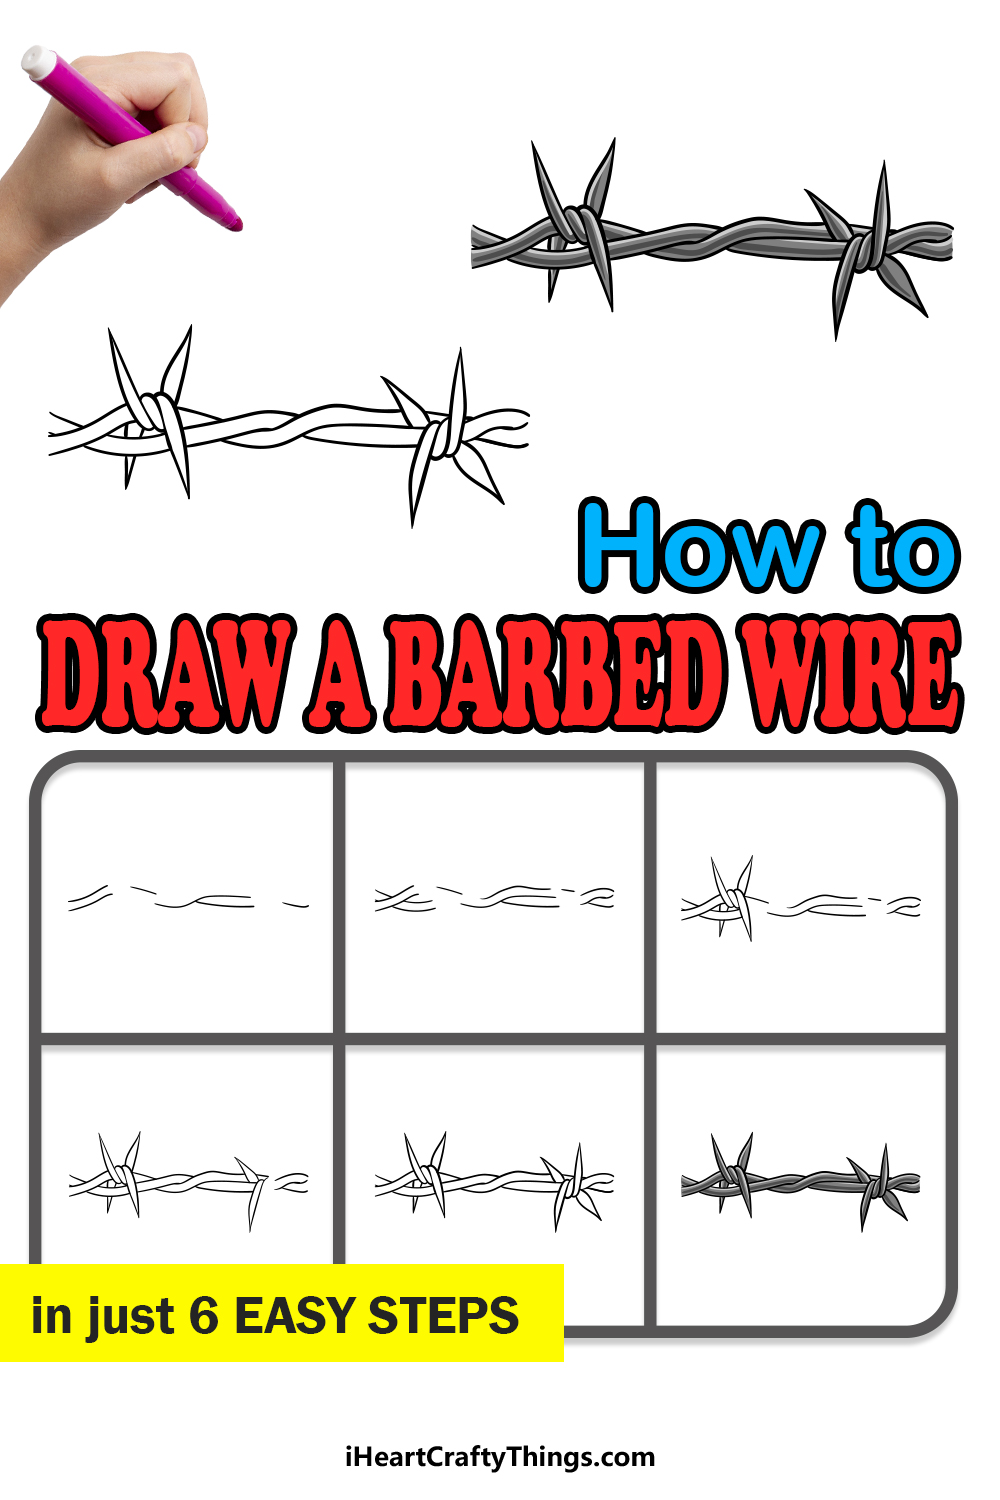 how to draw barbed wire in 6 easy steps